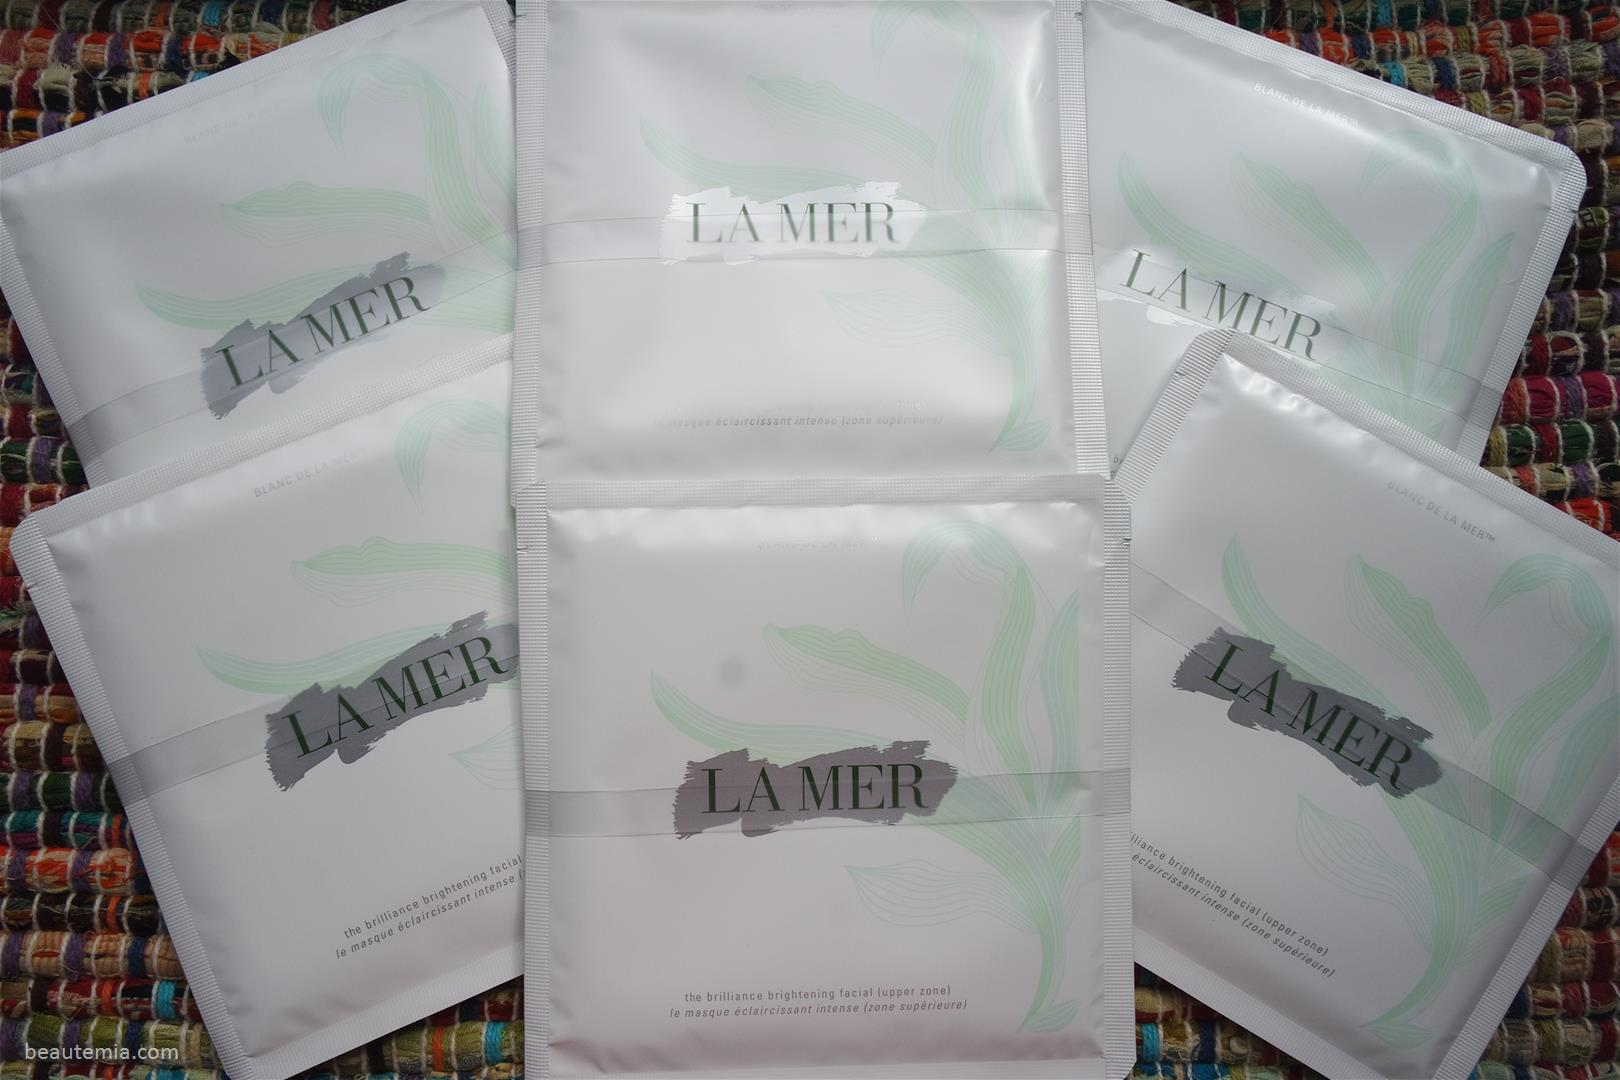 La Mer The Brilliance Brightening Facial, la mer skincare, la mer face oil, la mer the renewal oil, la mer creme de la mer, la mer moisturizing lotion, la mer moisturizer, la mer vs nivea, la mer vs la prairie, la mer vs sisley, la mer cream vs nivea cream, la mer the concentrate, la mer the regenerating serum, la mer genaissance de la mer, la prairie cellular swiss ice crystal dry oil, chantecaille rose de mai oil, sisley black rose oil & la mer the lifting contour serum